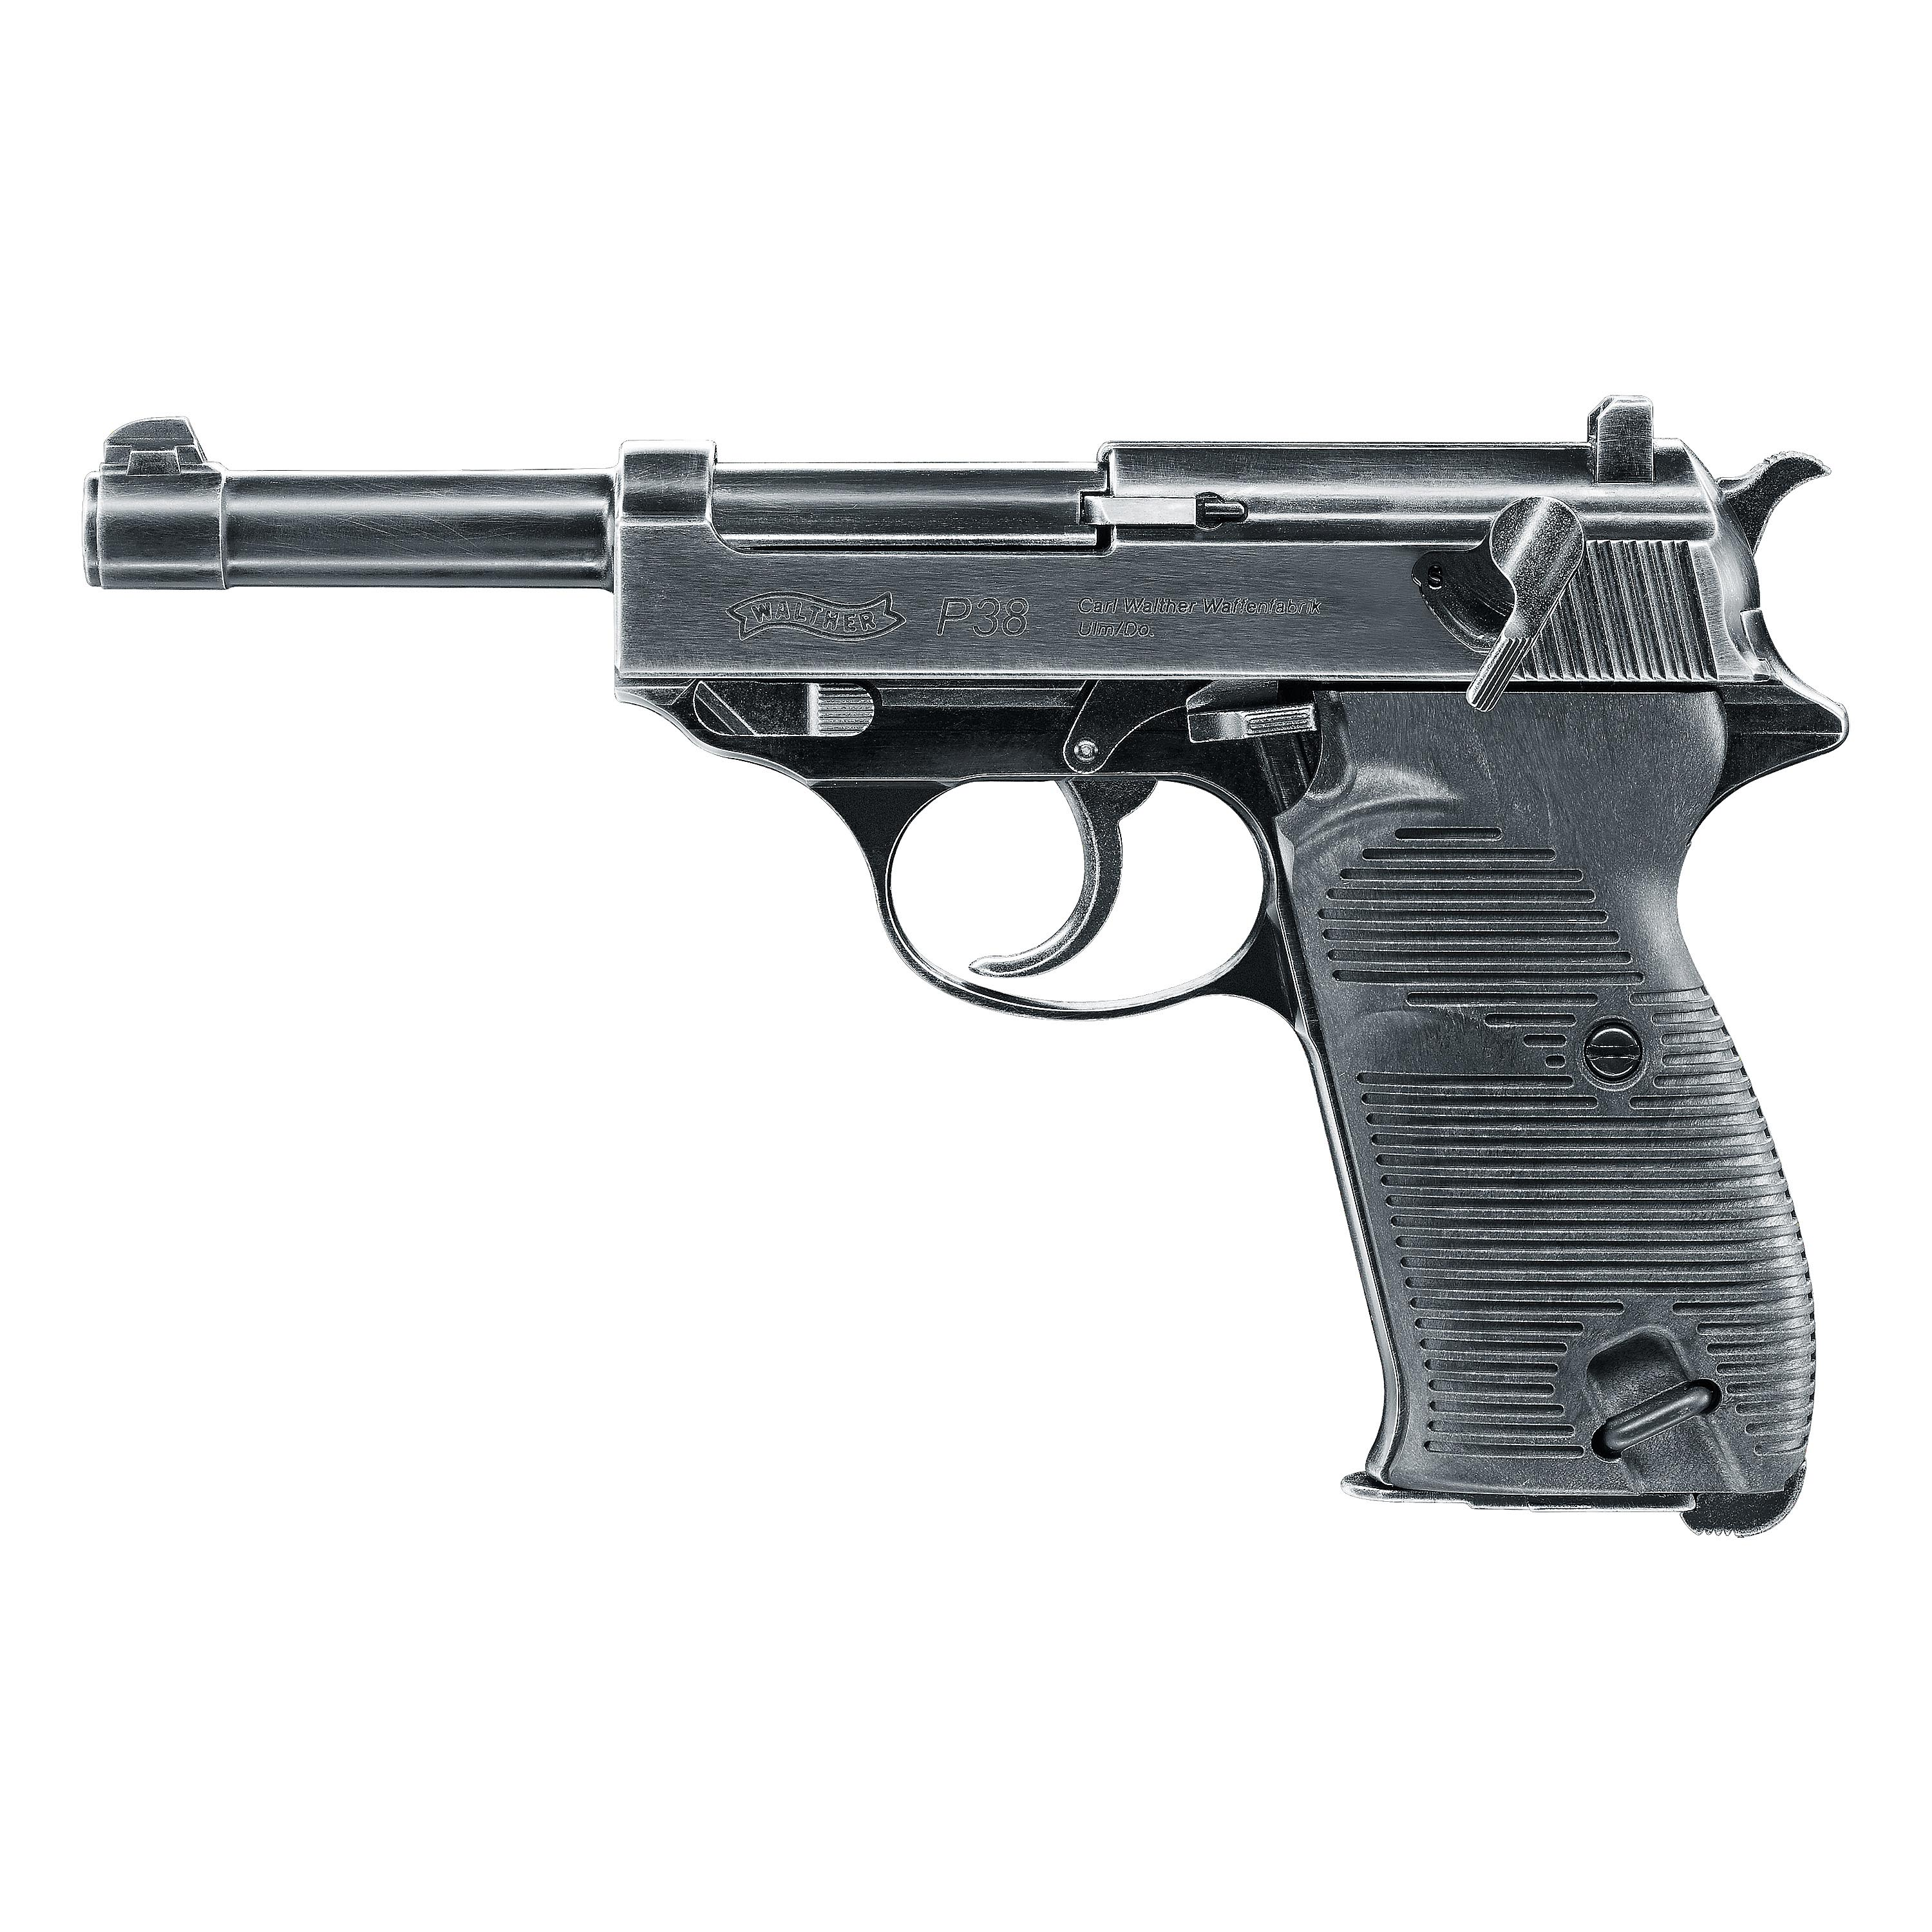 Walther Luftpistole P38 Legendary 4.5 mm